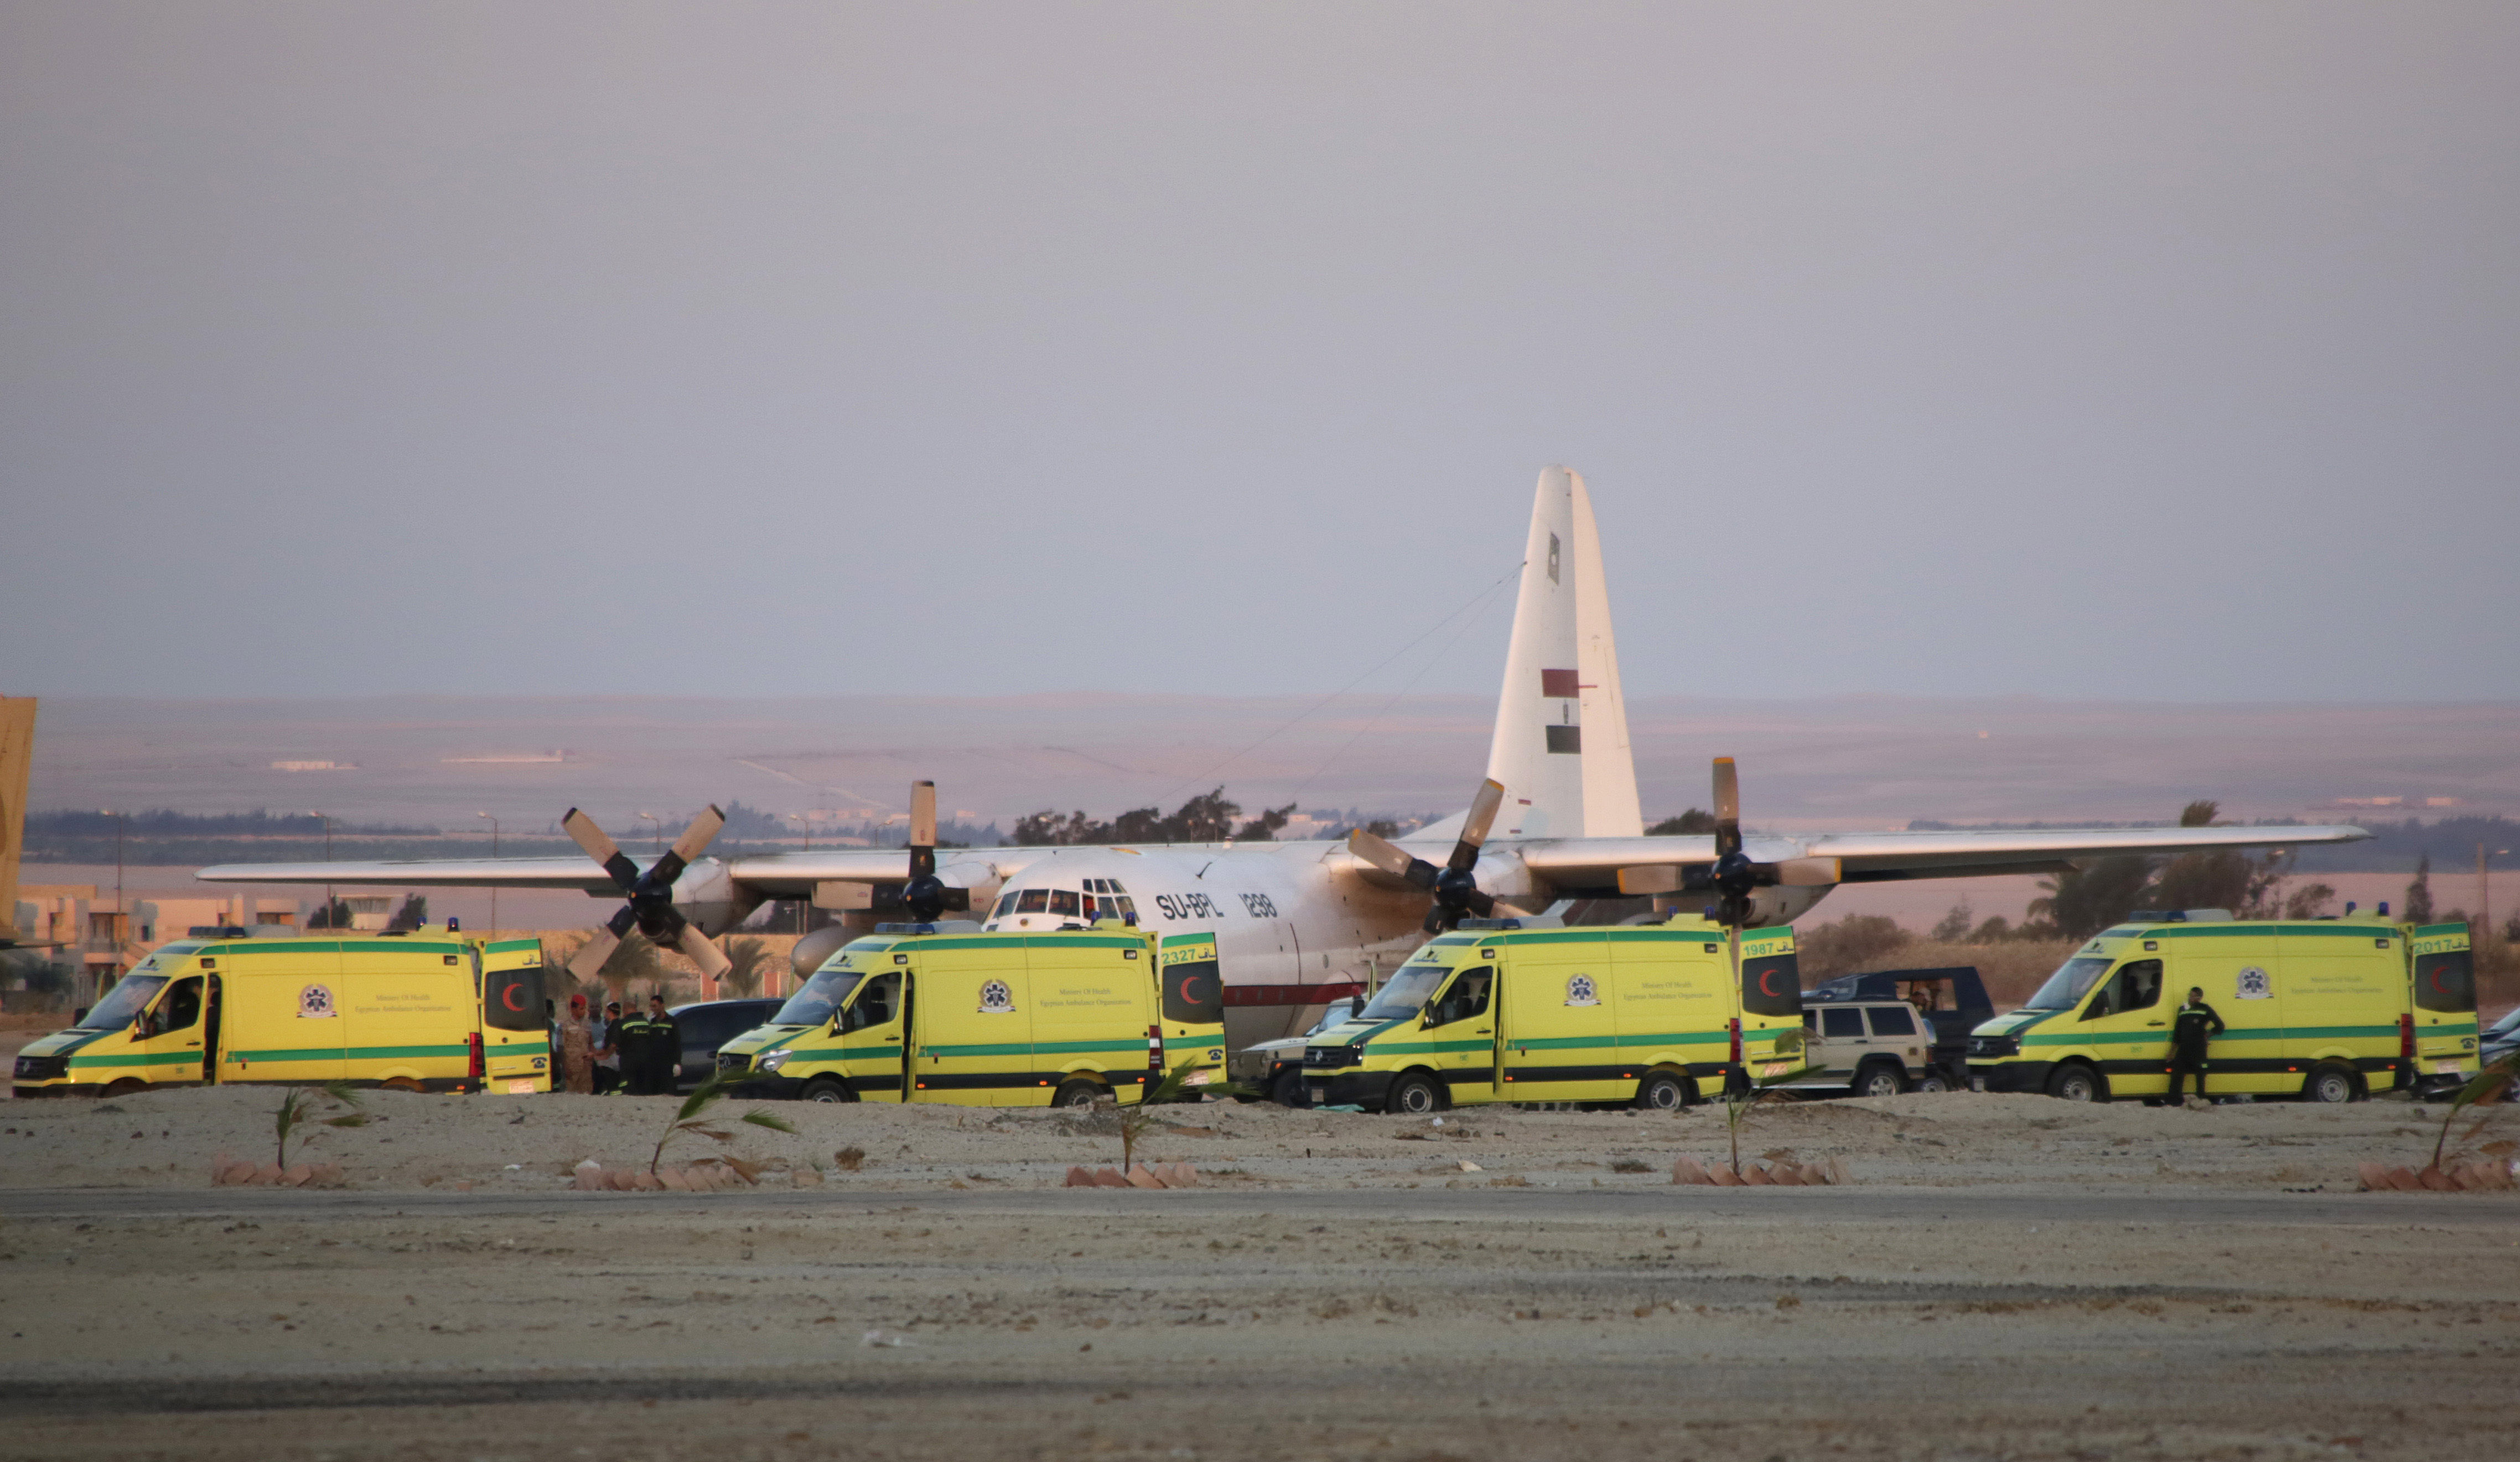 Ambulances line up as emergency workers unload bodies of victims from the crash of a Russian aircraft over the Sinai peninsula at the Kabrit military airport, some 20 miles north of Suez, Egypt, Oct. 31, 2015.